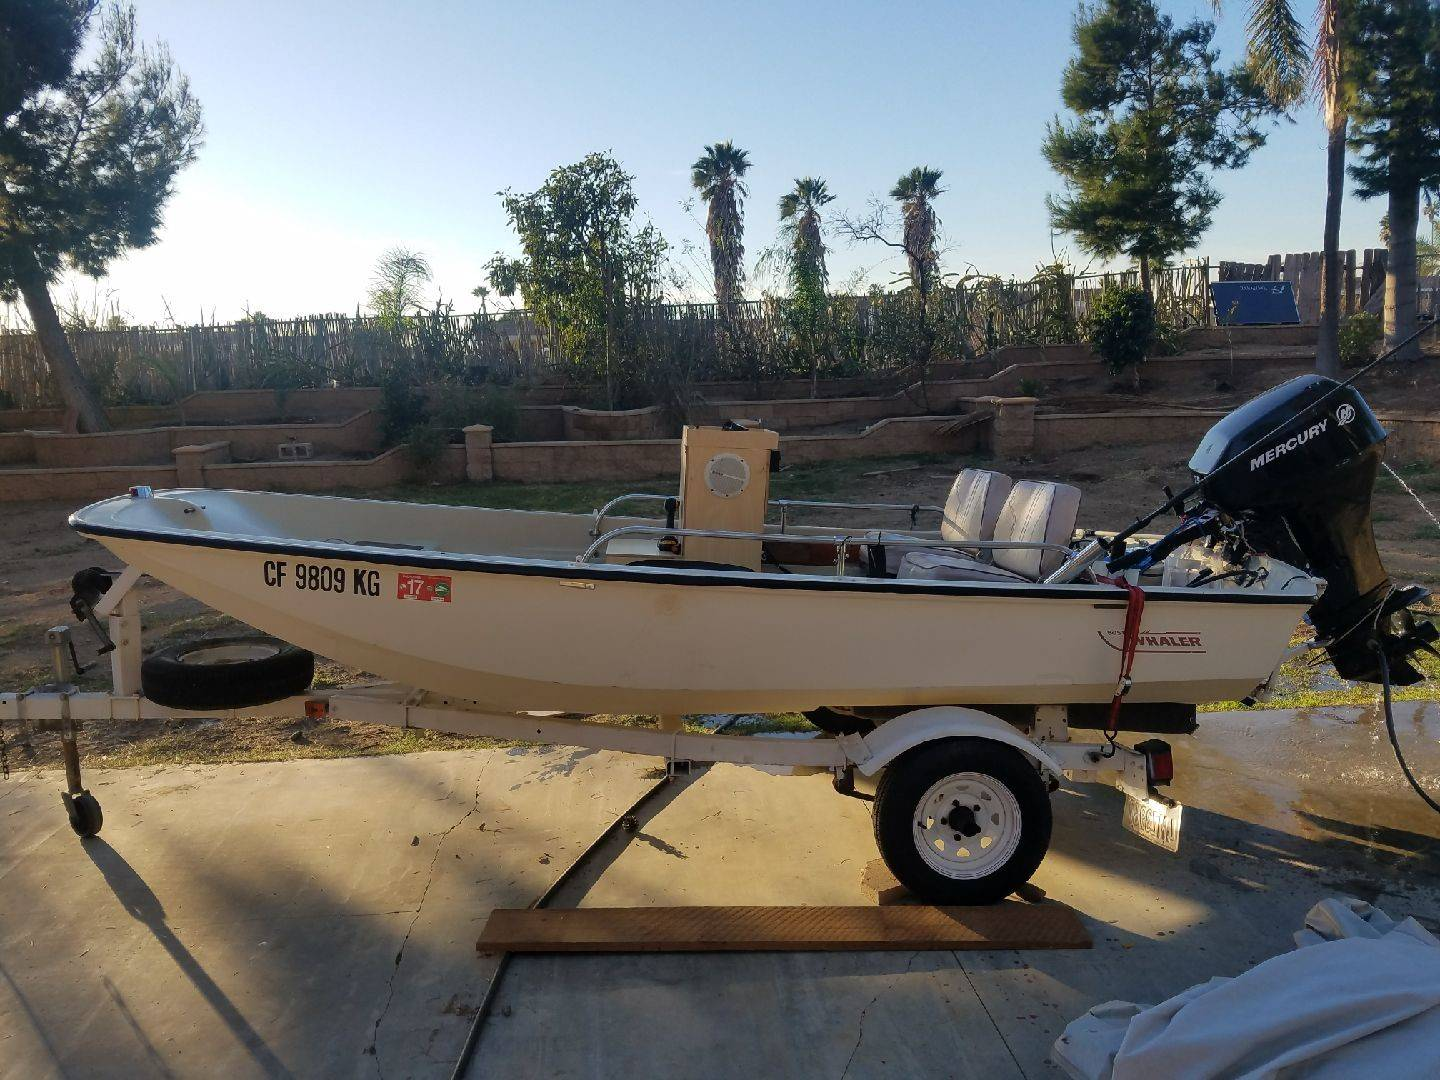 For Sale - WTS: 13 ft Boston Whaler w/ 4 stroke | Bloodydecks